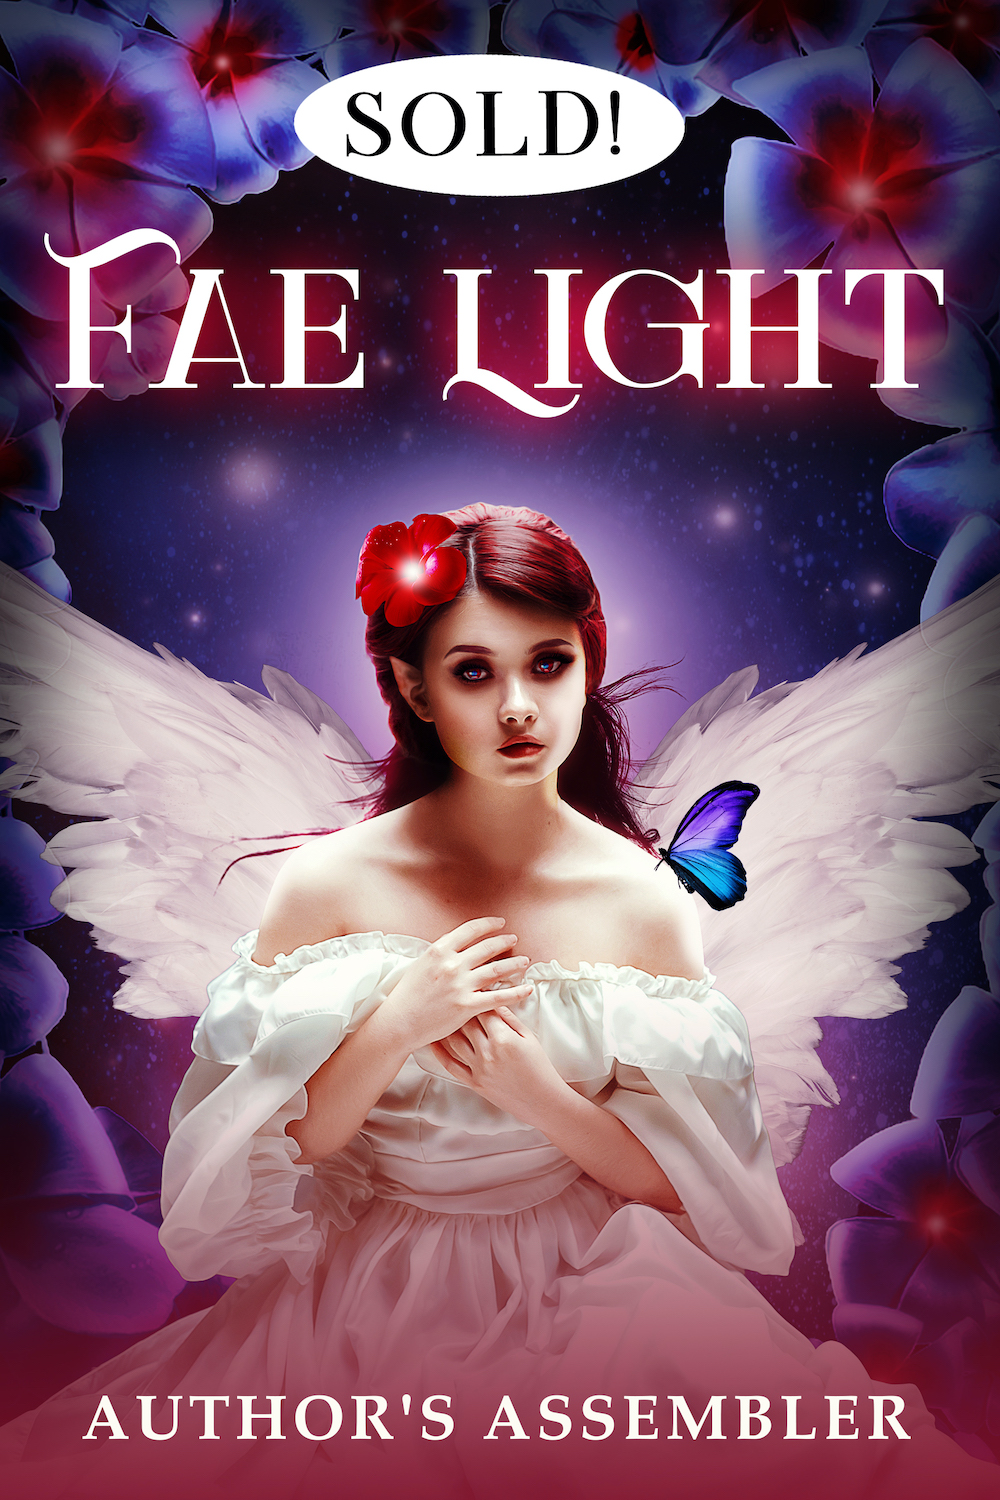 sold Fae Light